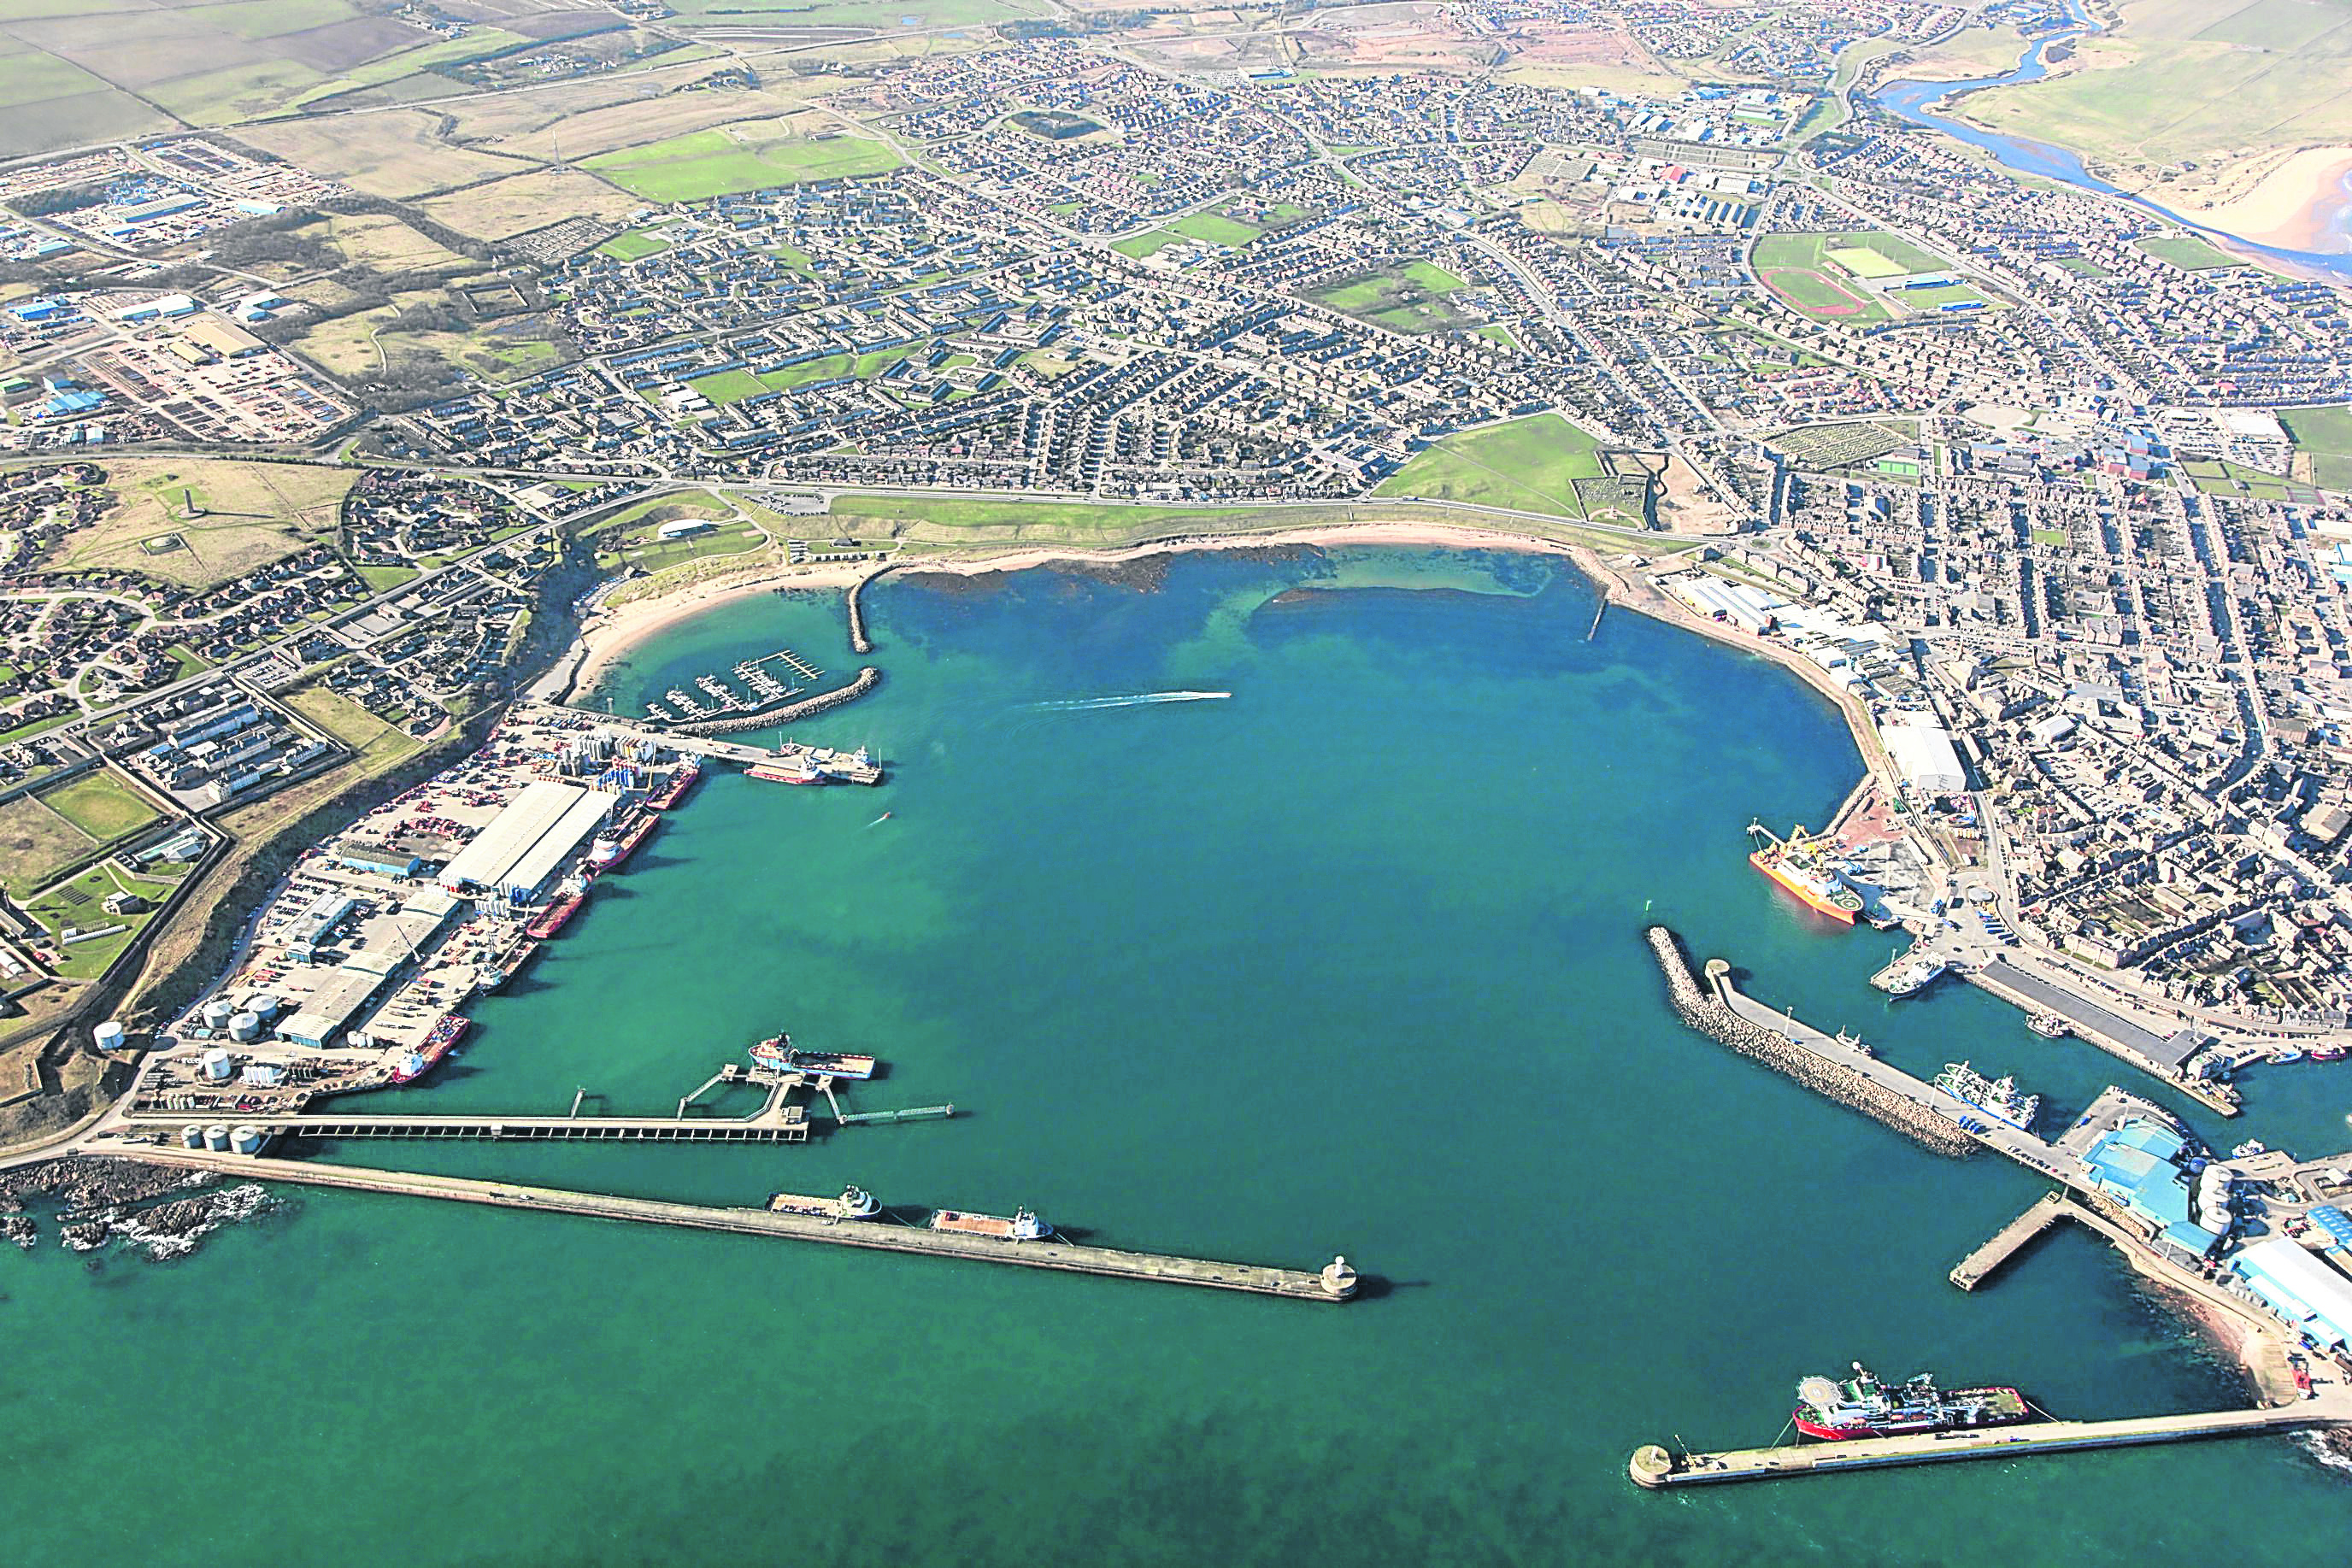 Deputy infrastructure boss warns £350million harbour expansion could threaten north-east ports.